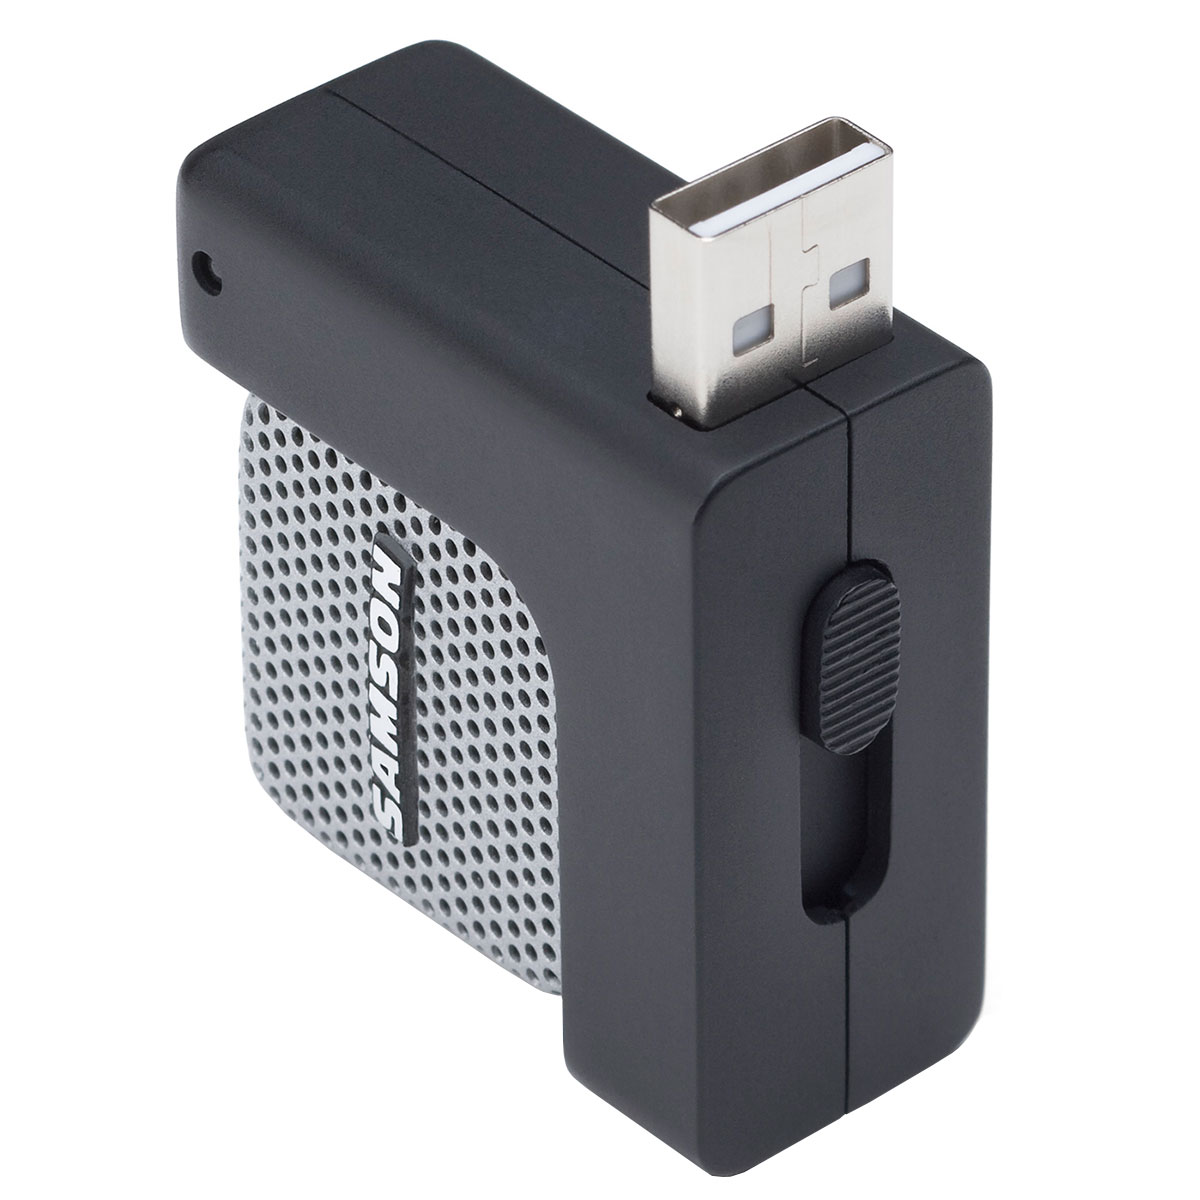 GOMIC Direct - Microfone USB GO MIC Direct - Samson